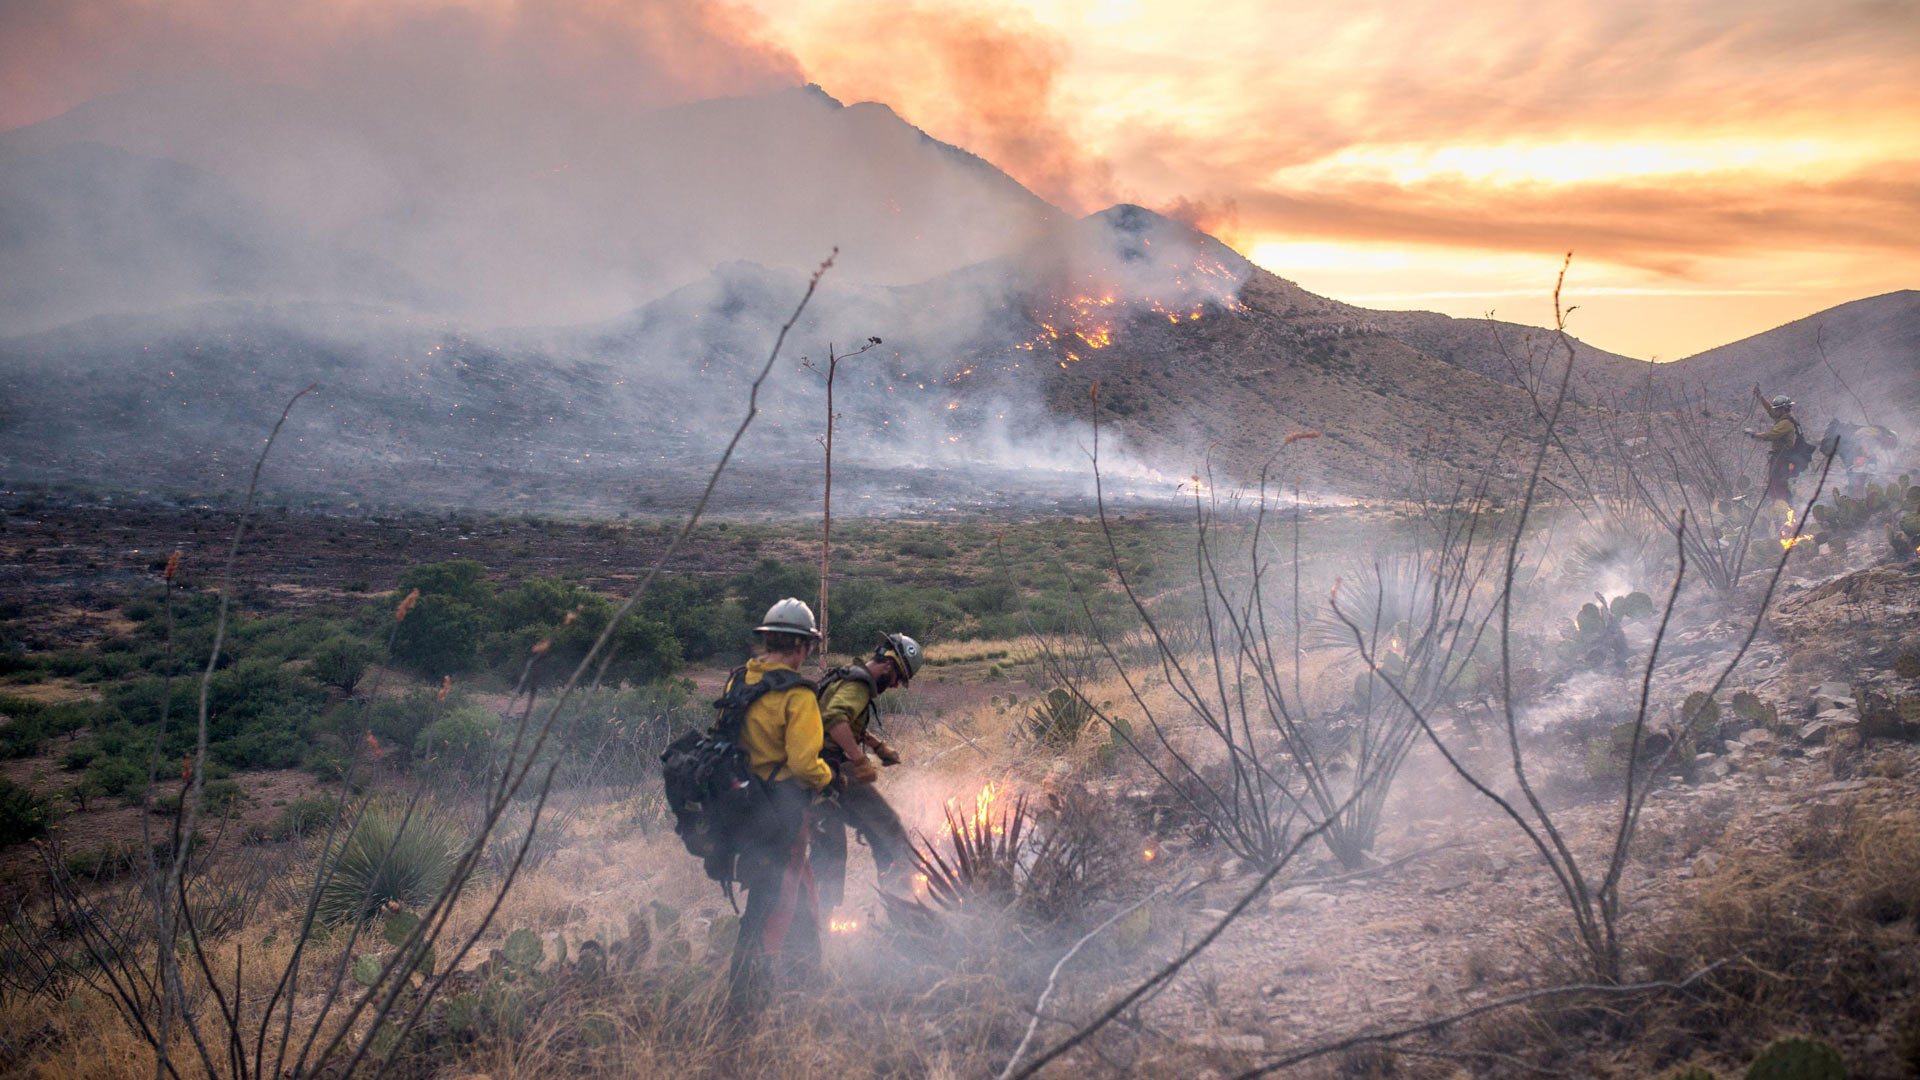 Firefighters battle the Lizard Fire on a smoky hillside, 2017.